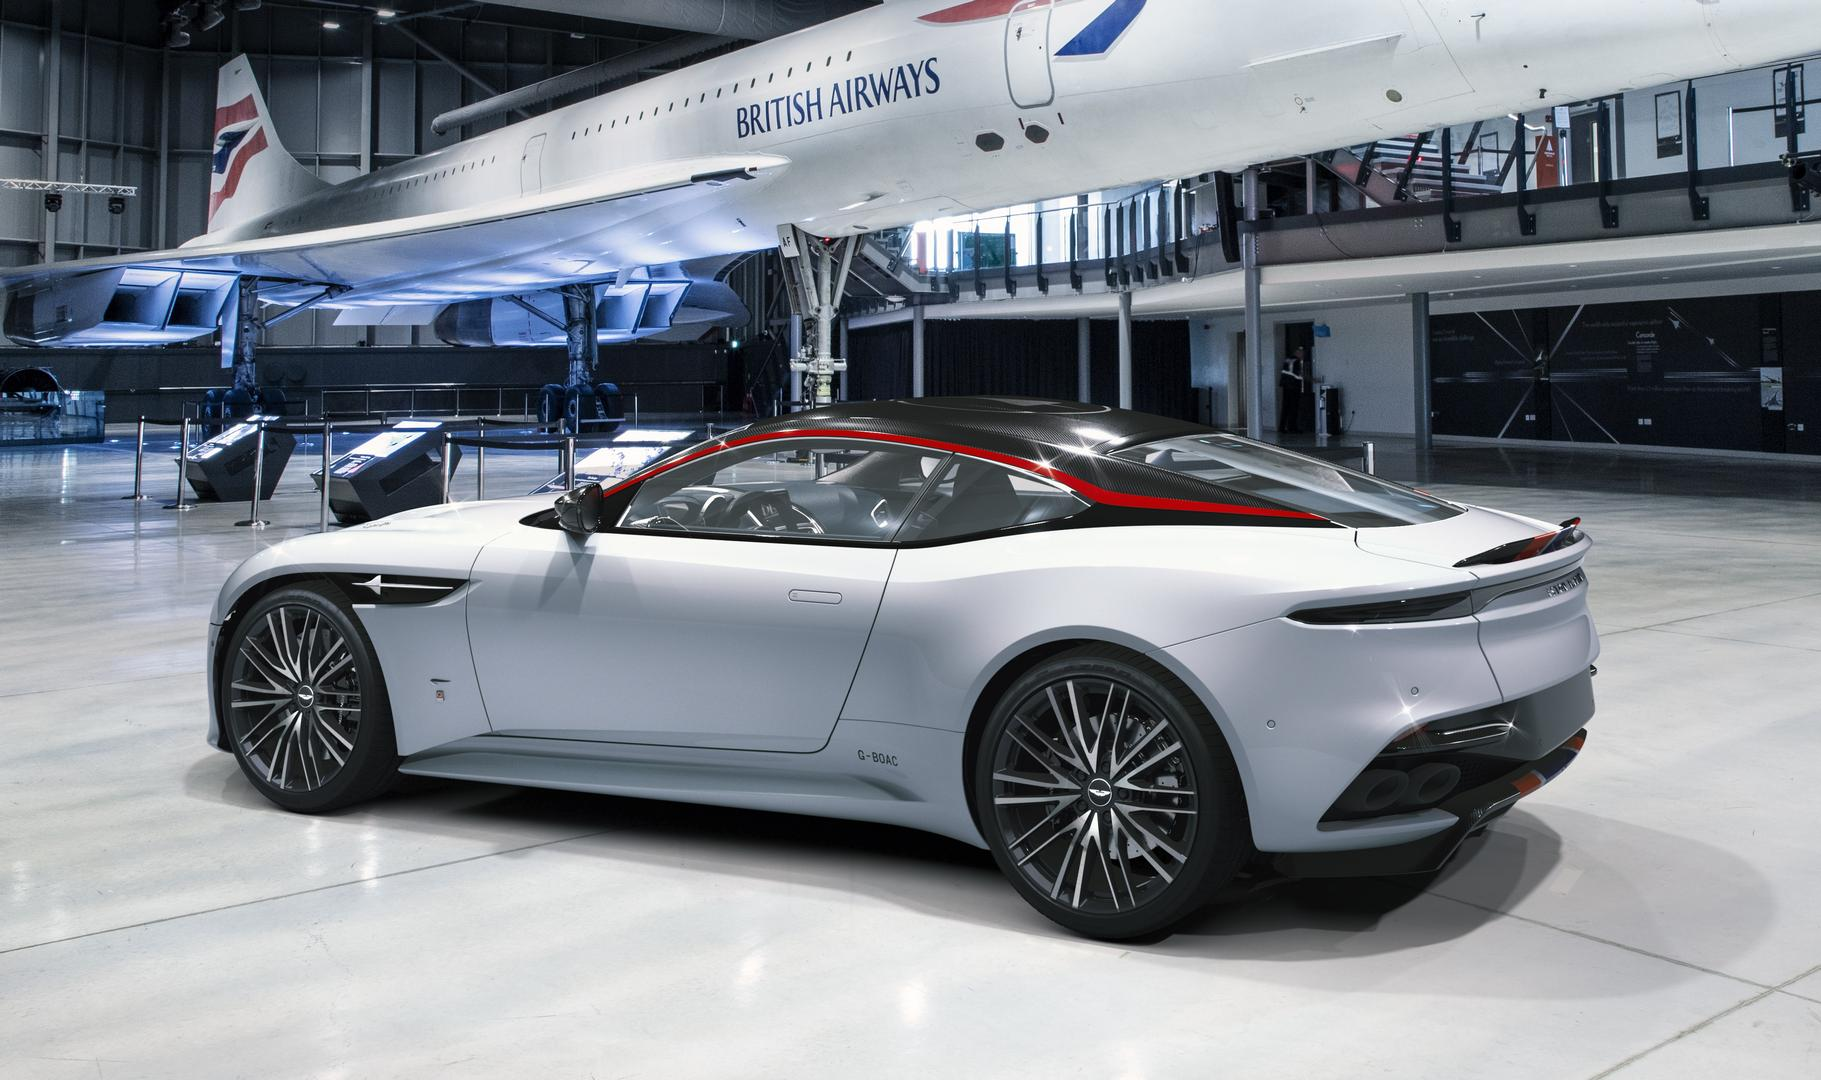 Aston Martin DBS Superleggera Concorde Edition Side